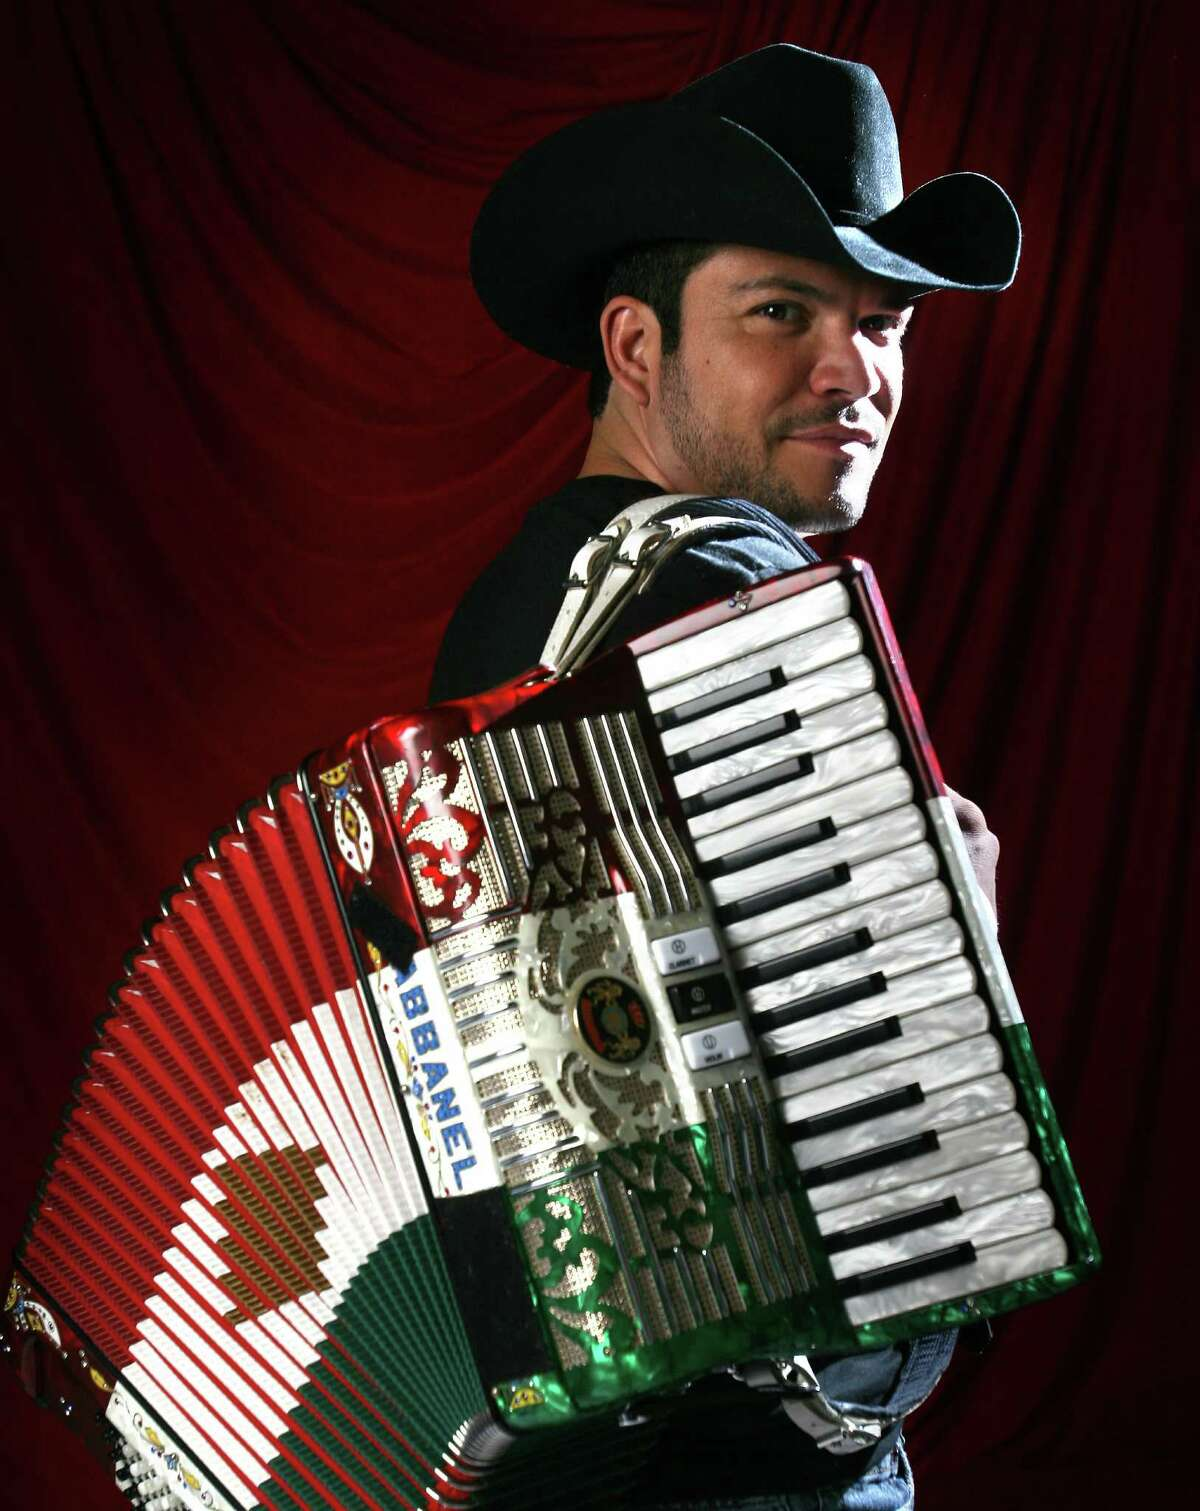 Tejano star Michael Salgado is scheduled to perform at St. Henry's Catholic Church's festival Sept. 7.